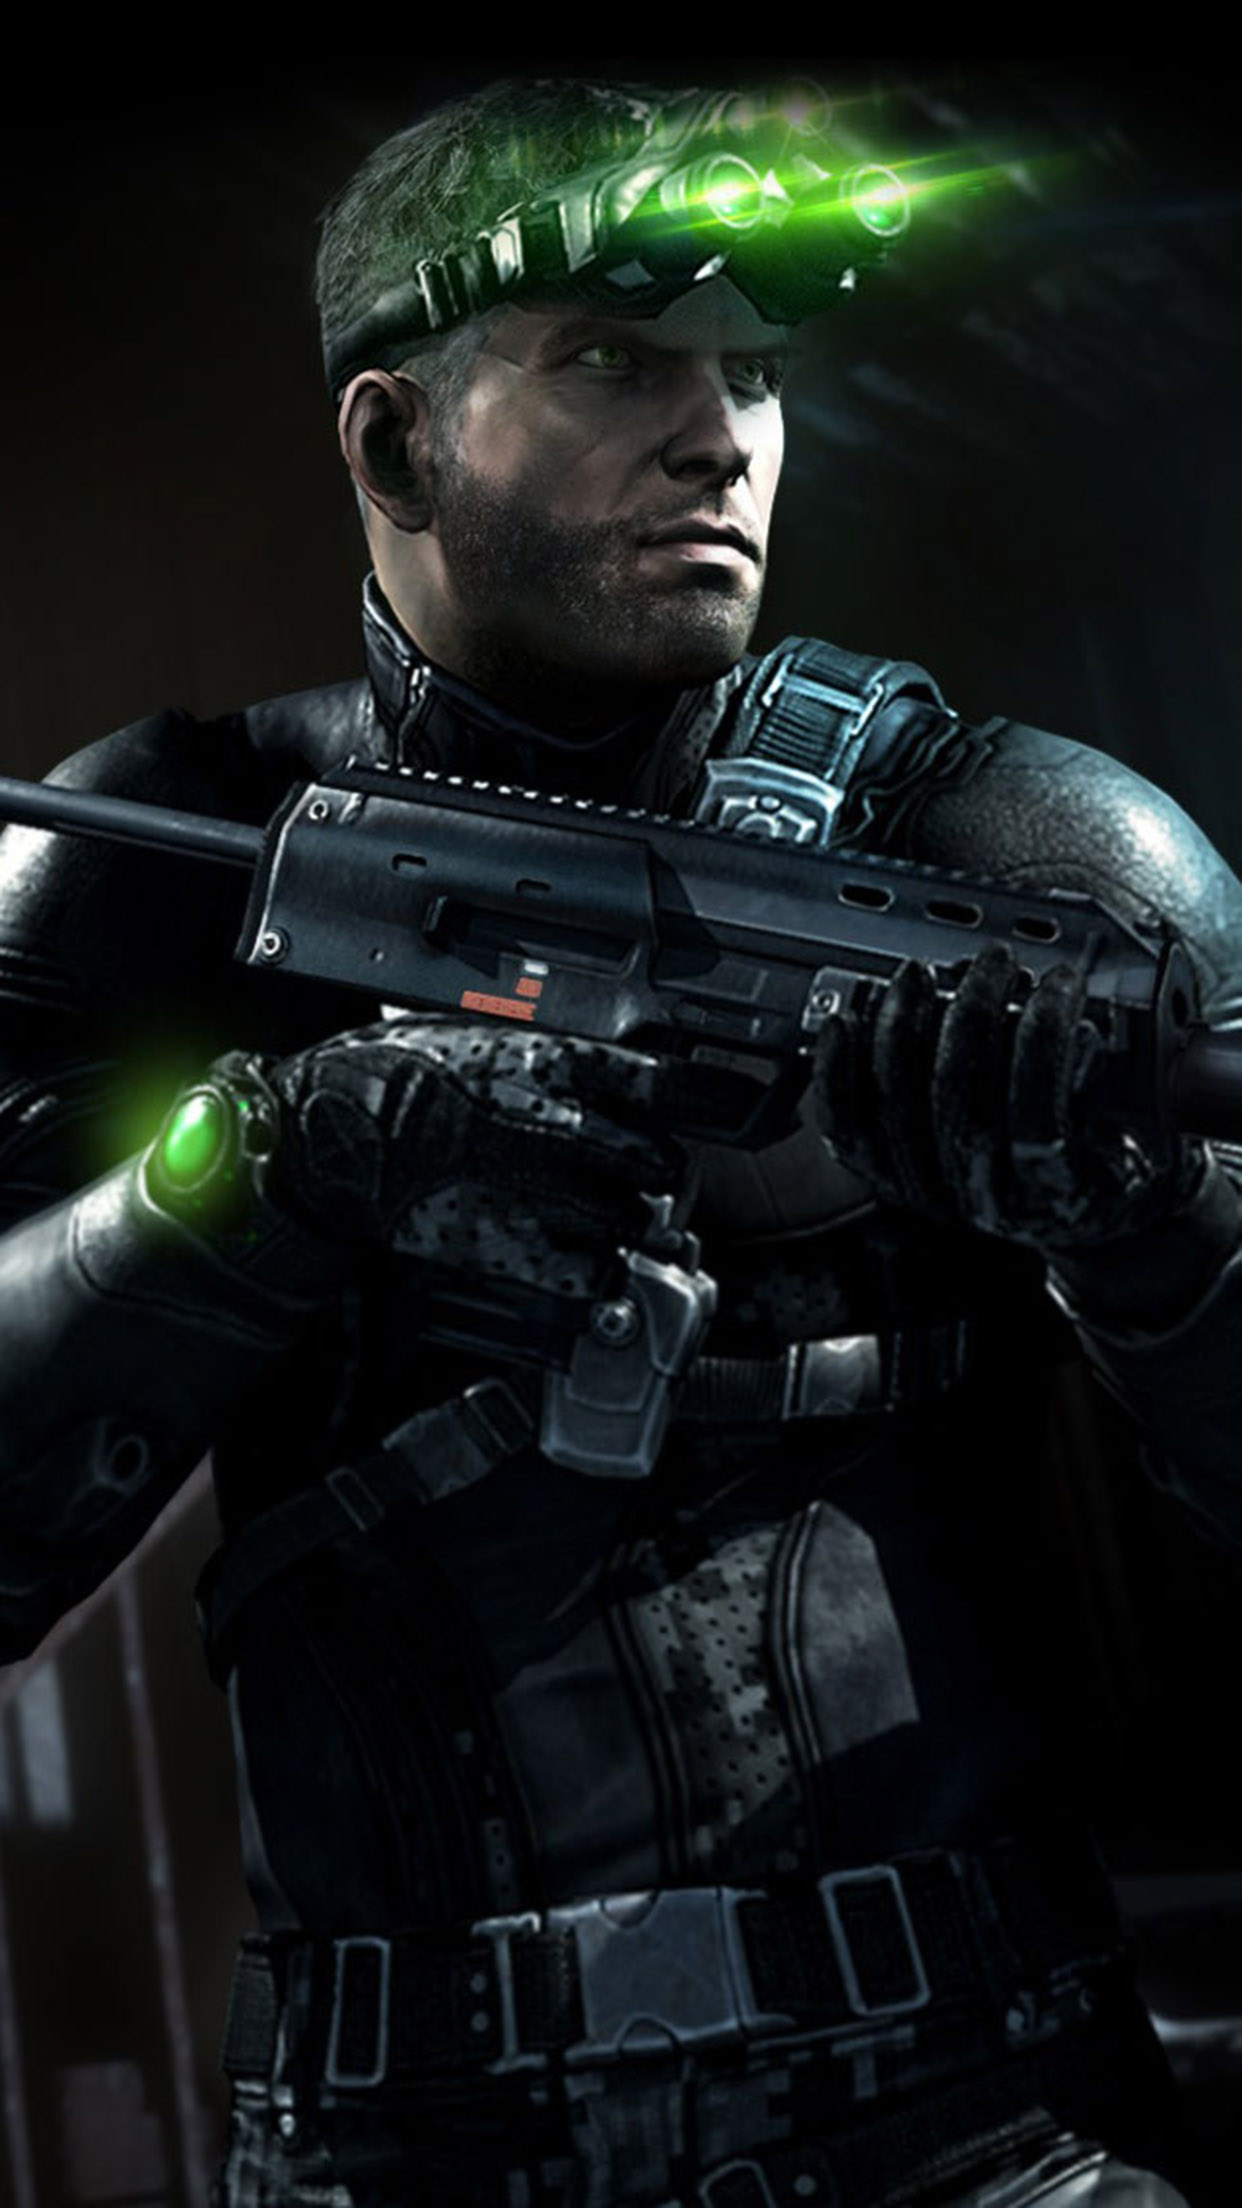 Splinter Cell Blacklist Blacklist 2 3Wallpapers iPhone Parallax Splinter Cell Blacklist 2